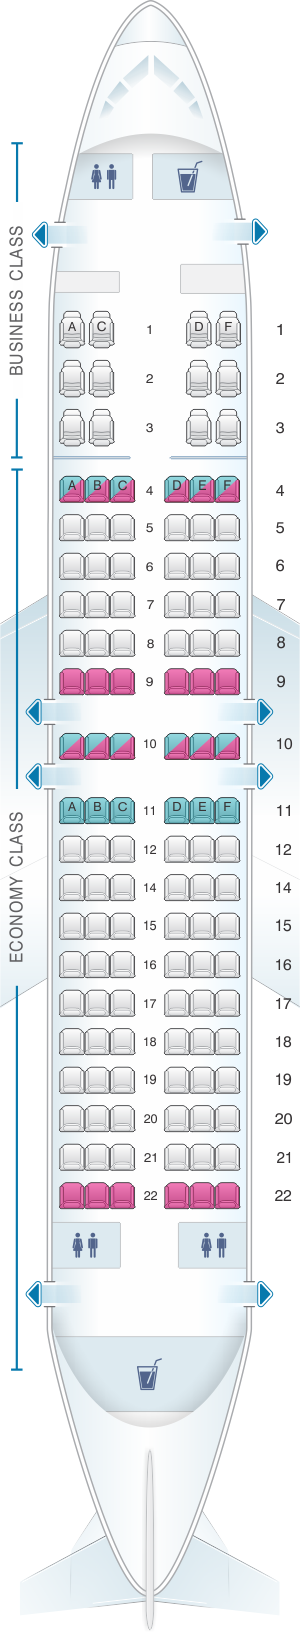 Seat map for TAAG Angola Airlines Boeing B737 700